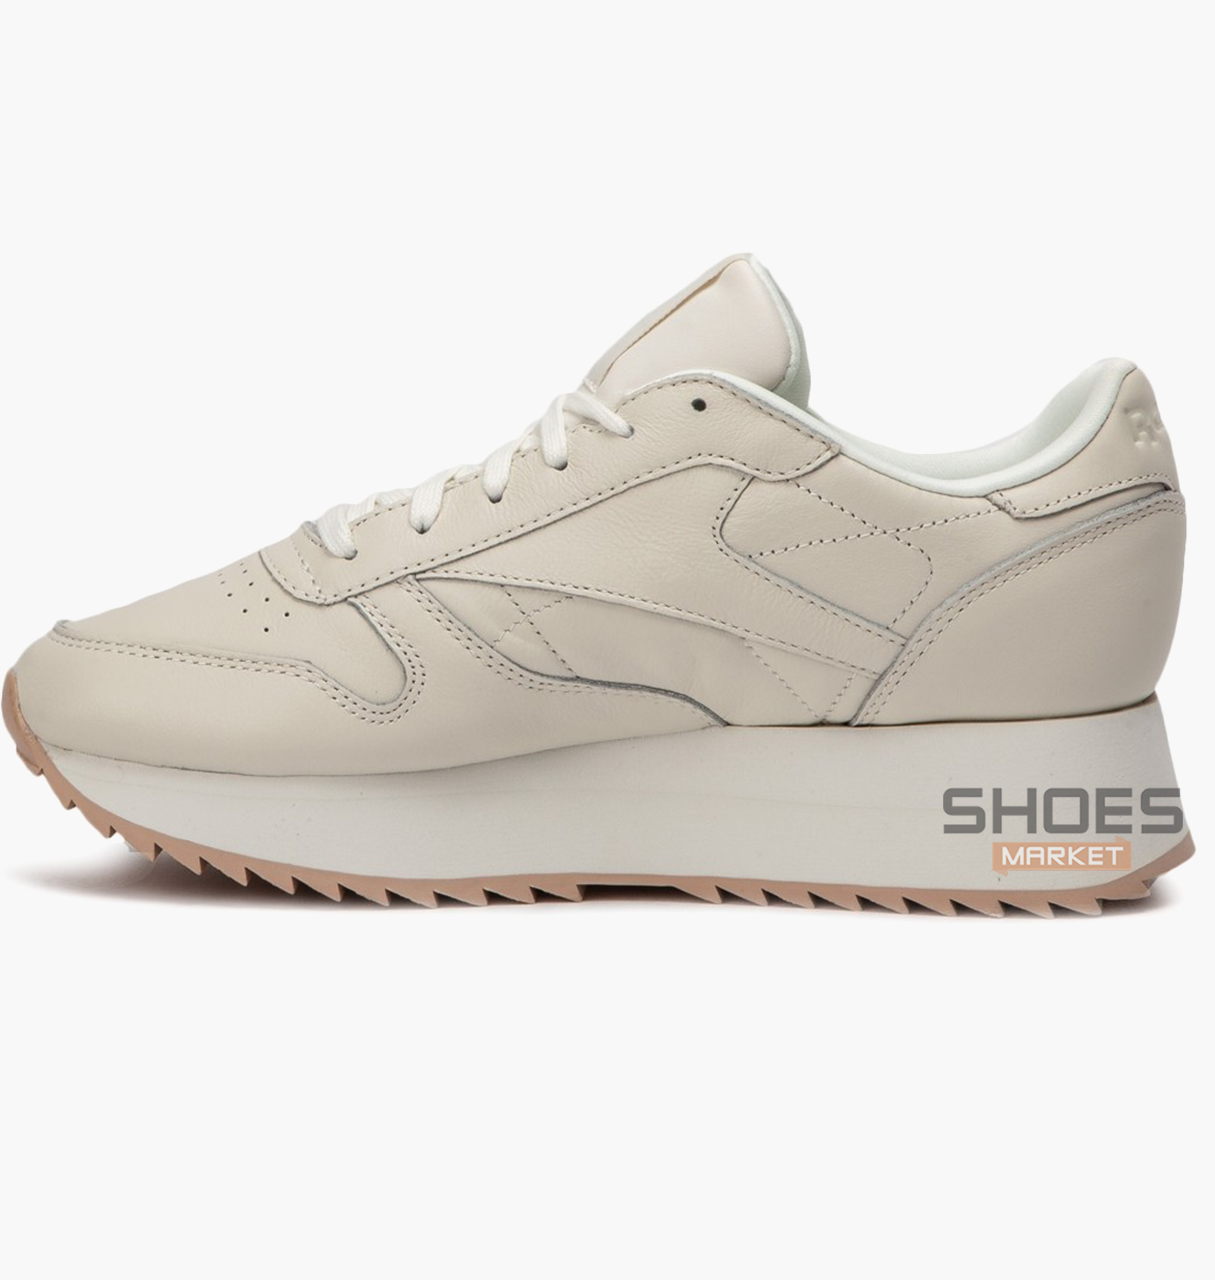 7115de97ffb Женские кроссовки Reebok Classic Leather Double Beige CN5491 ...